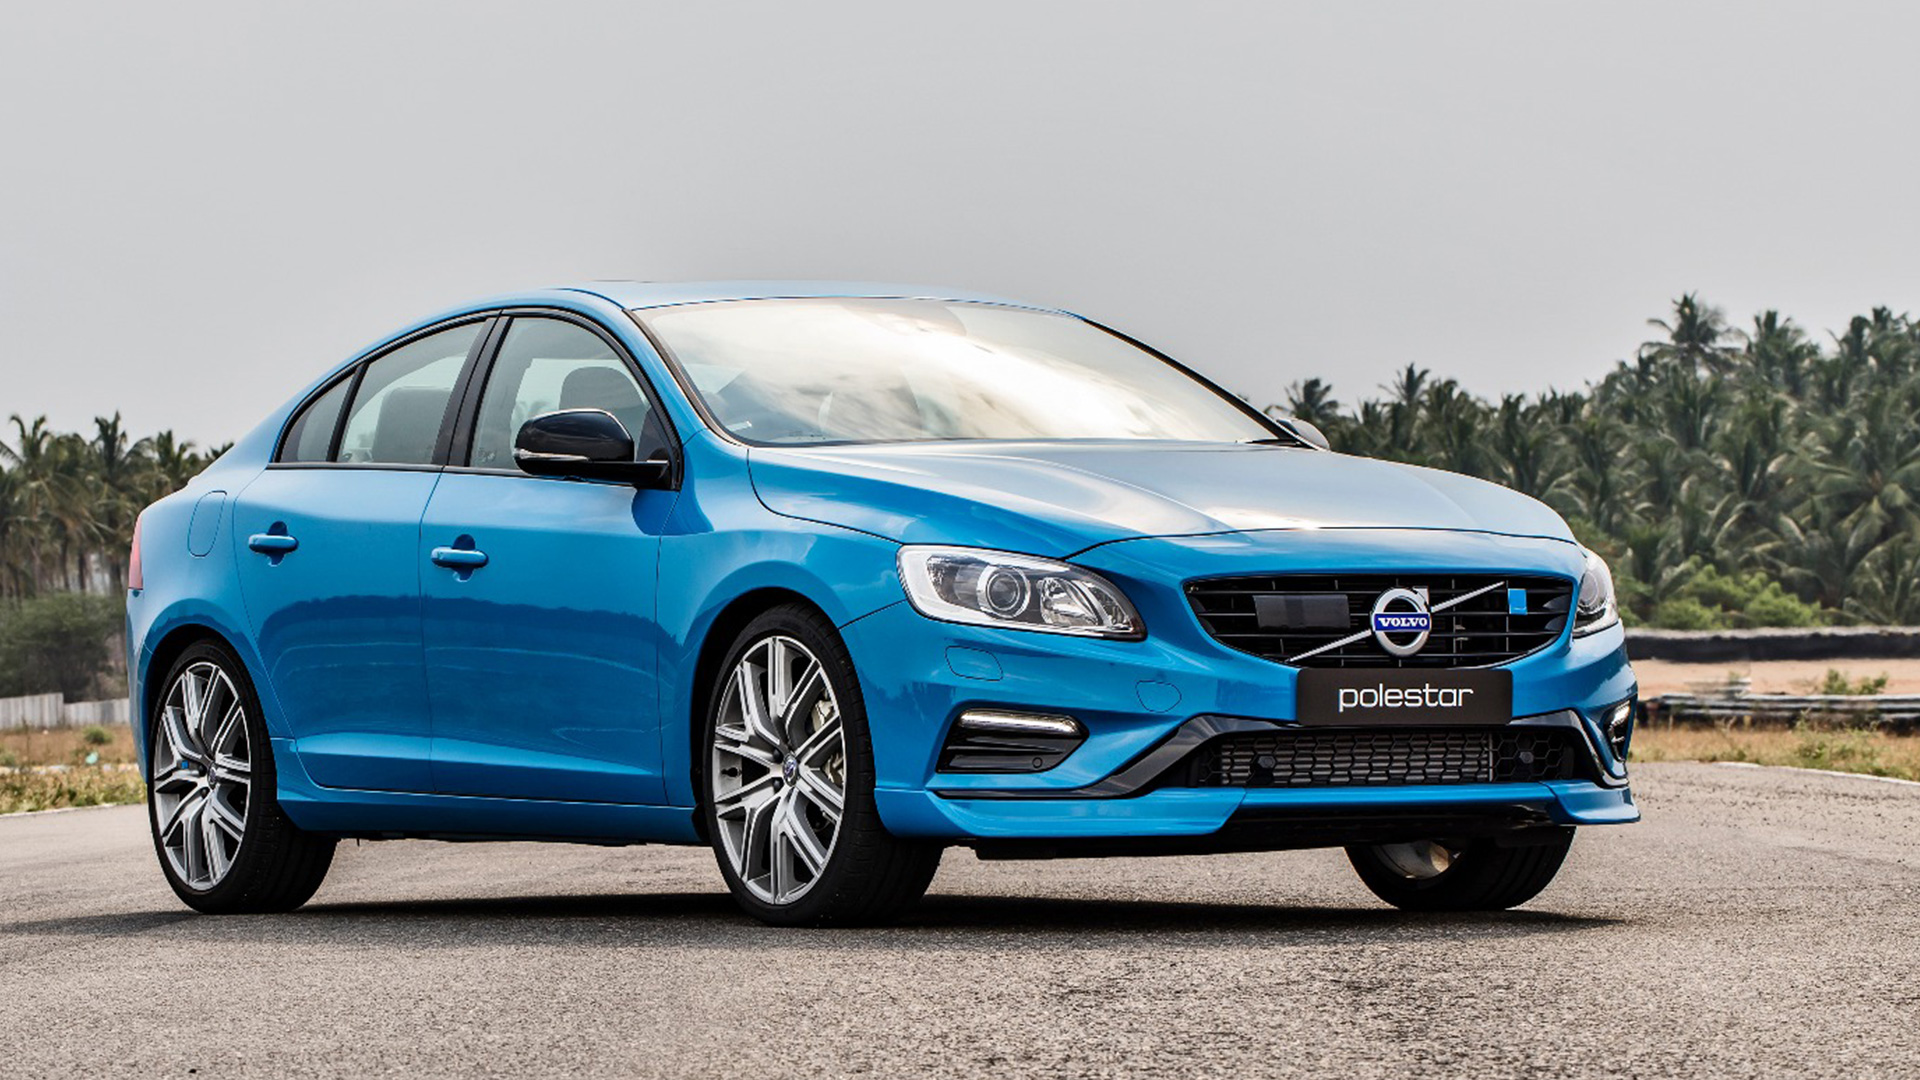 volvo s60 2017 polestar price mileage reviews specification gallery overdrive. Black Bedroom Furniture Sets. Home Design Ideas